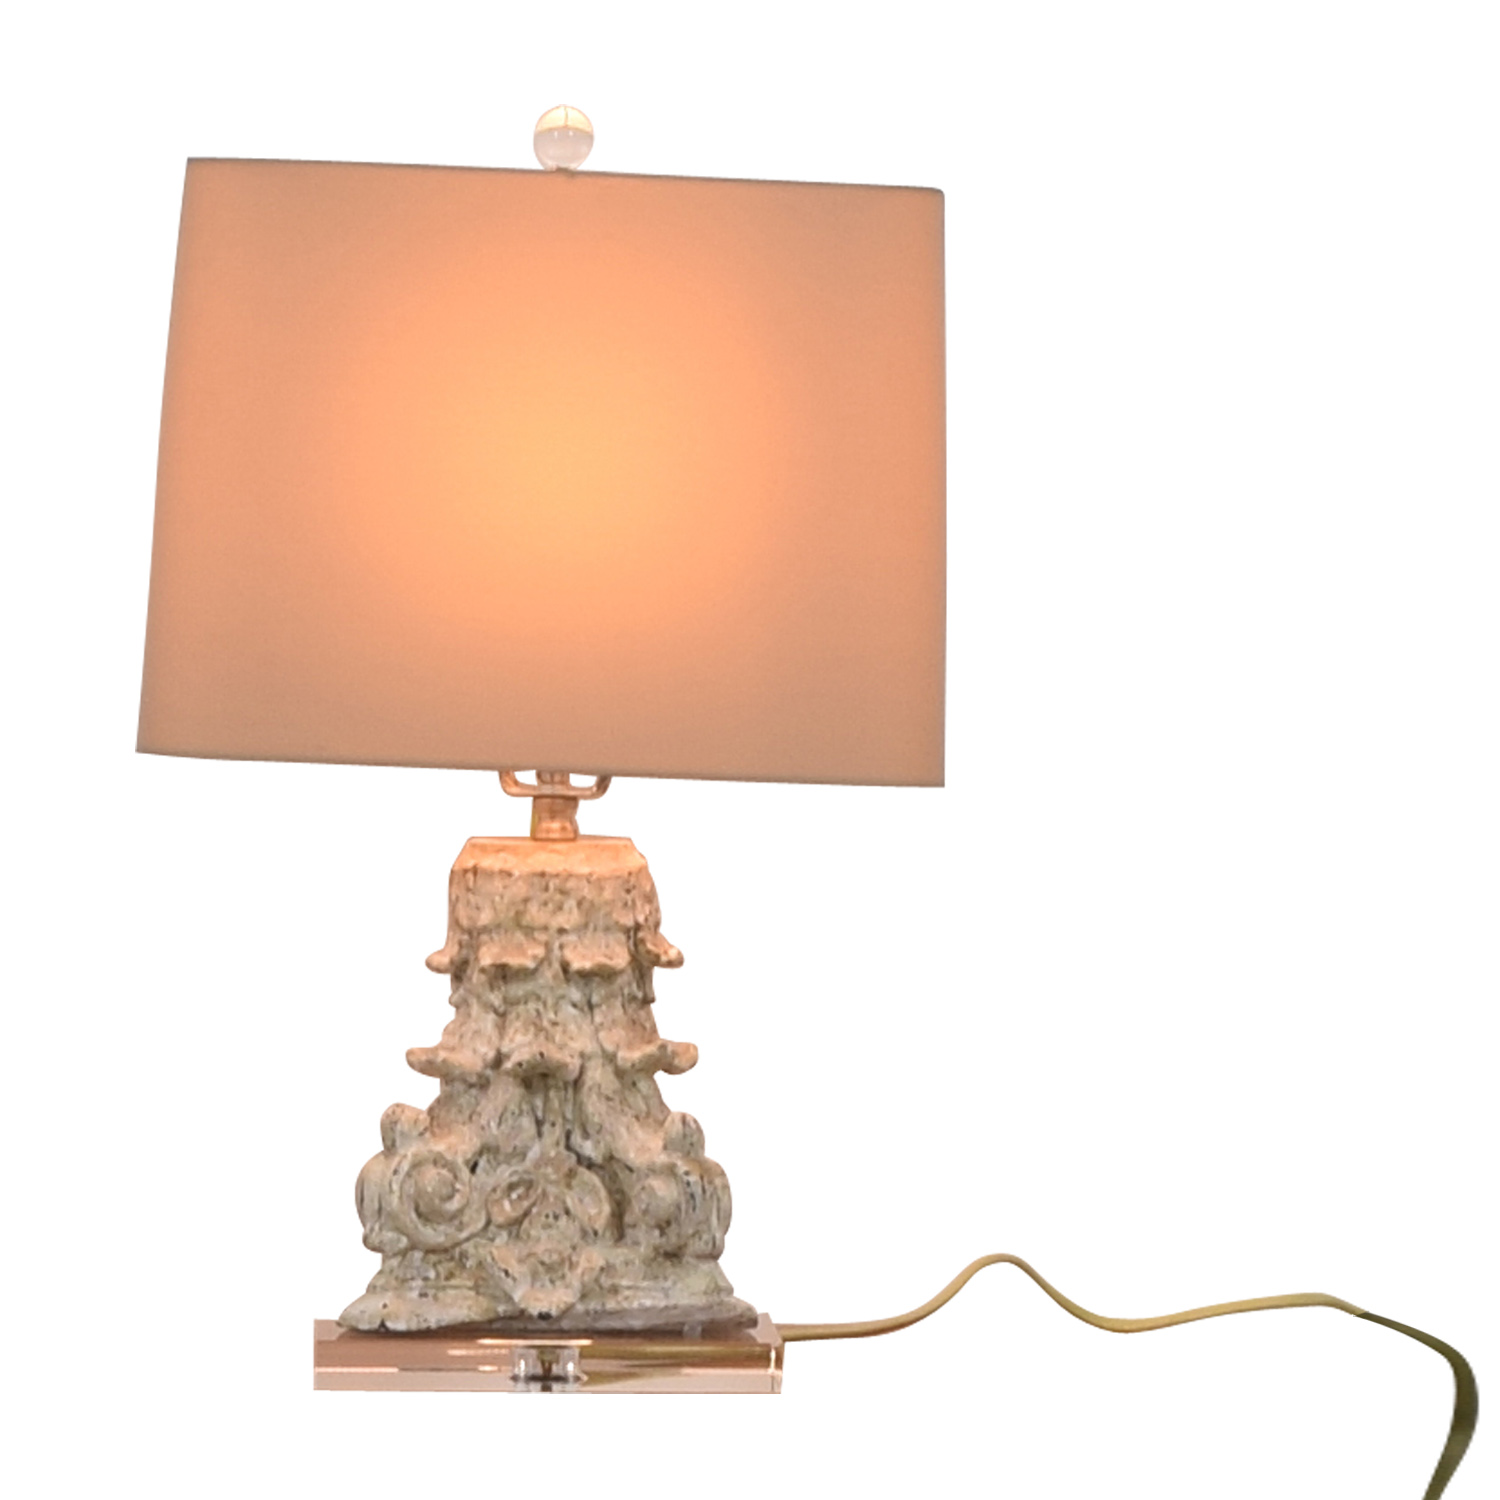 Carved Beige Table Lamp dimensions